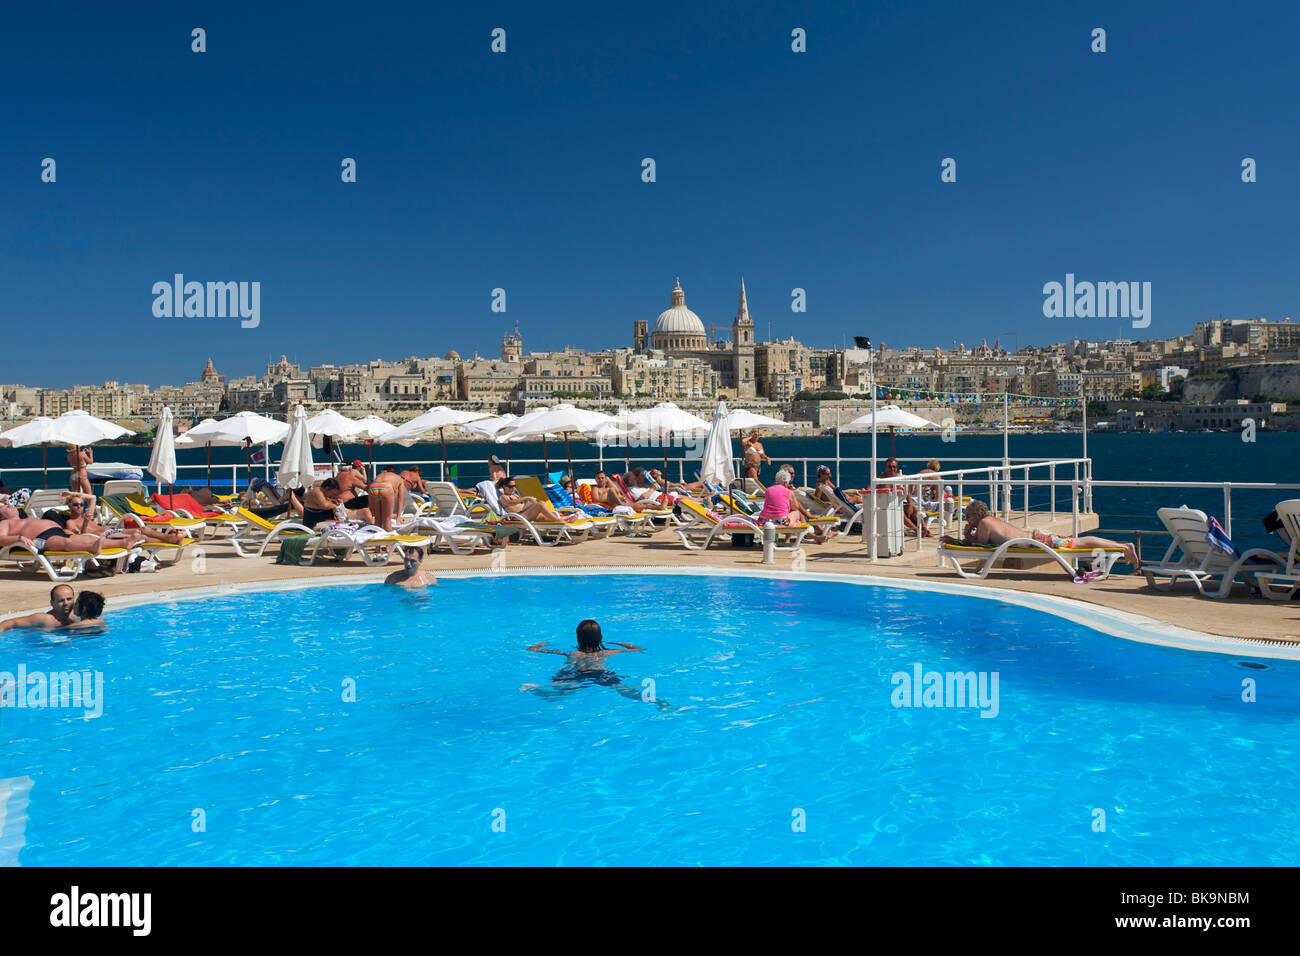 View from a hotel pool in Sliema to Valletta, Malta, Europe - Stock Image